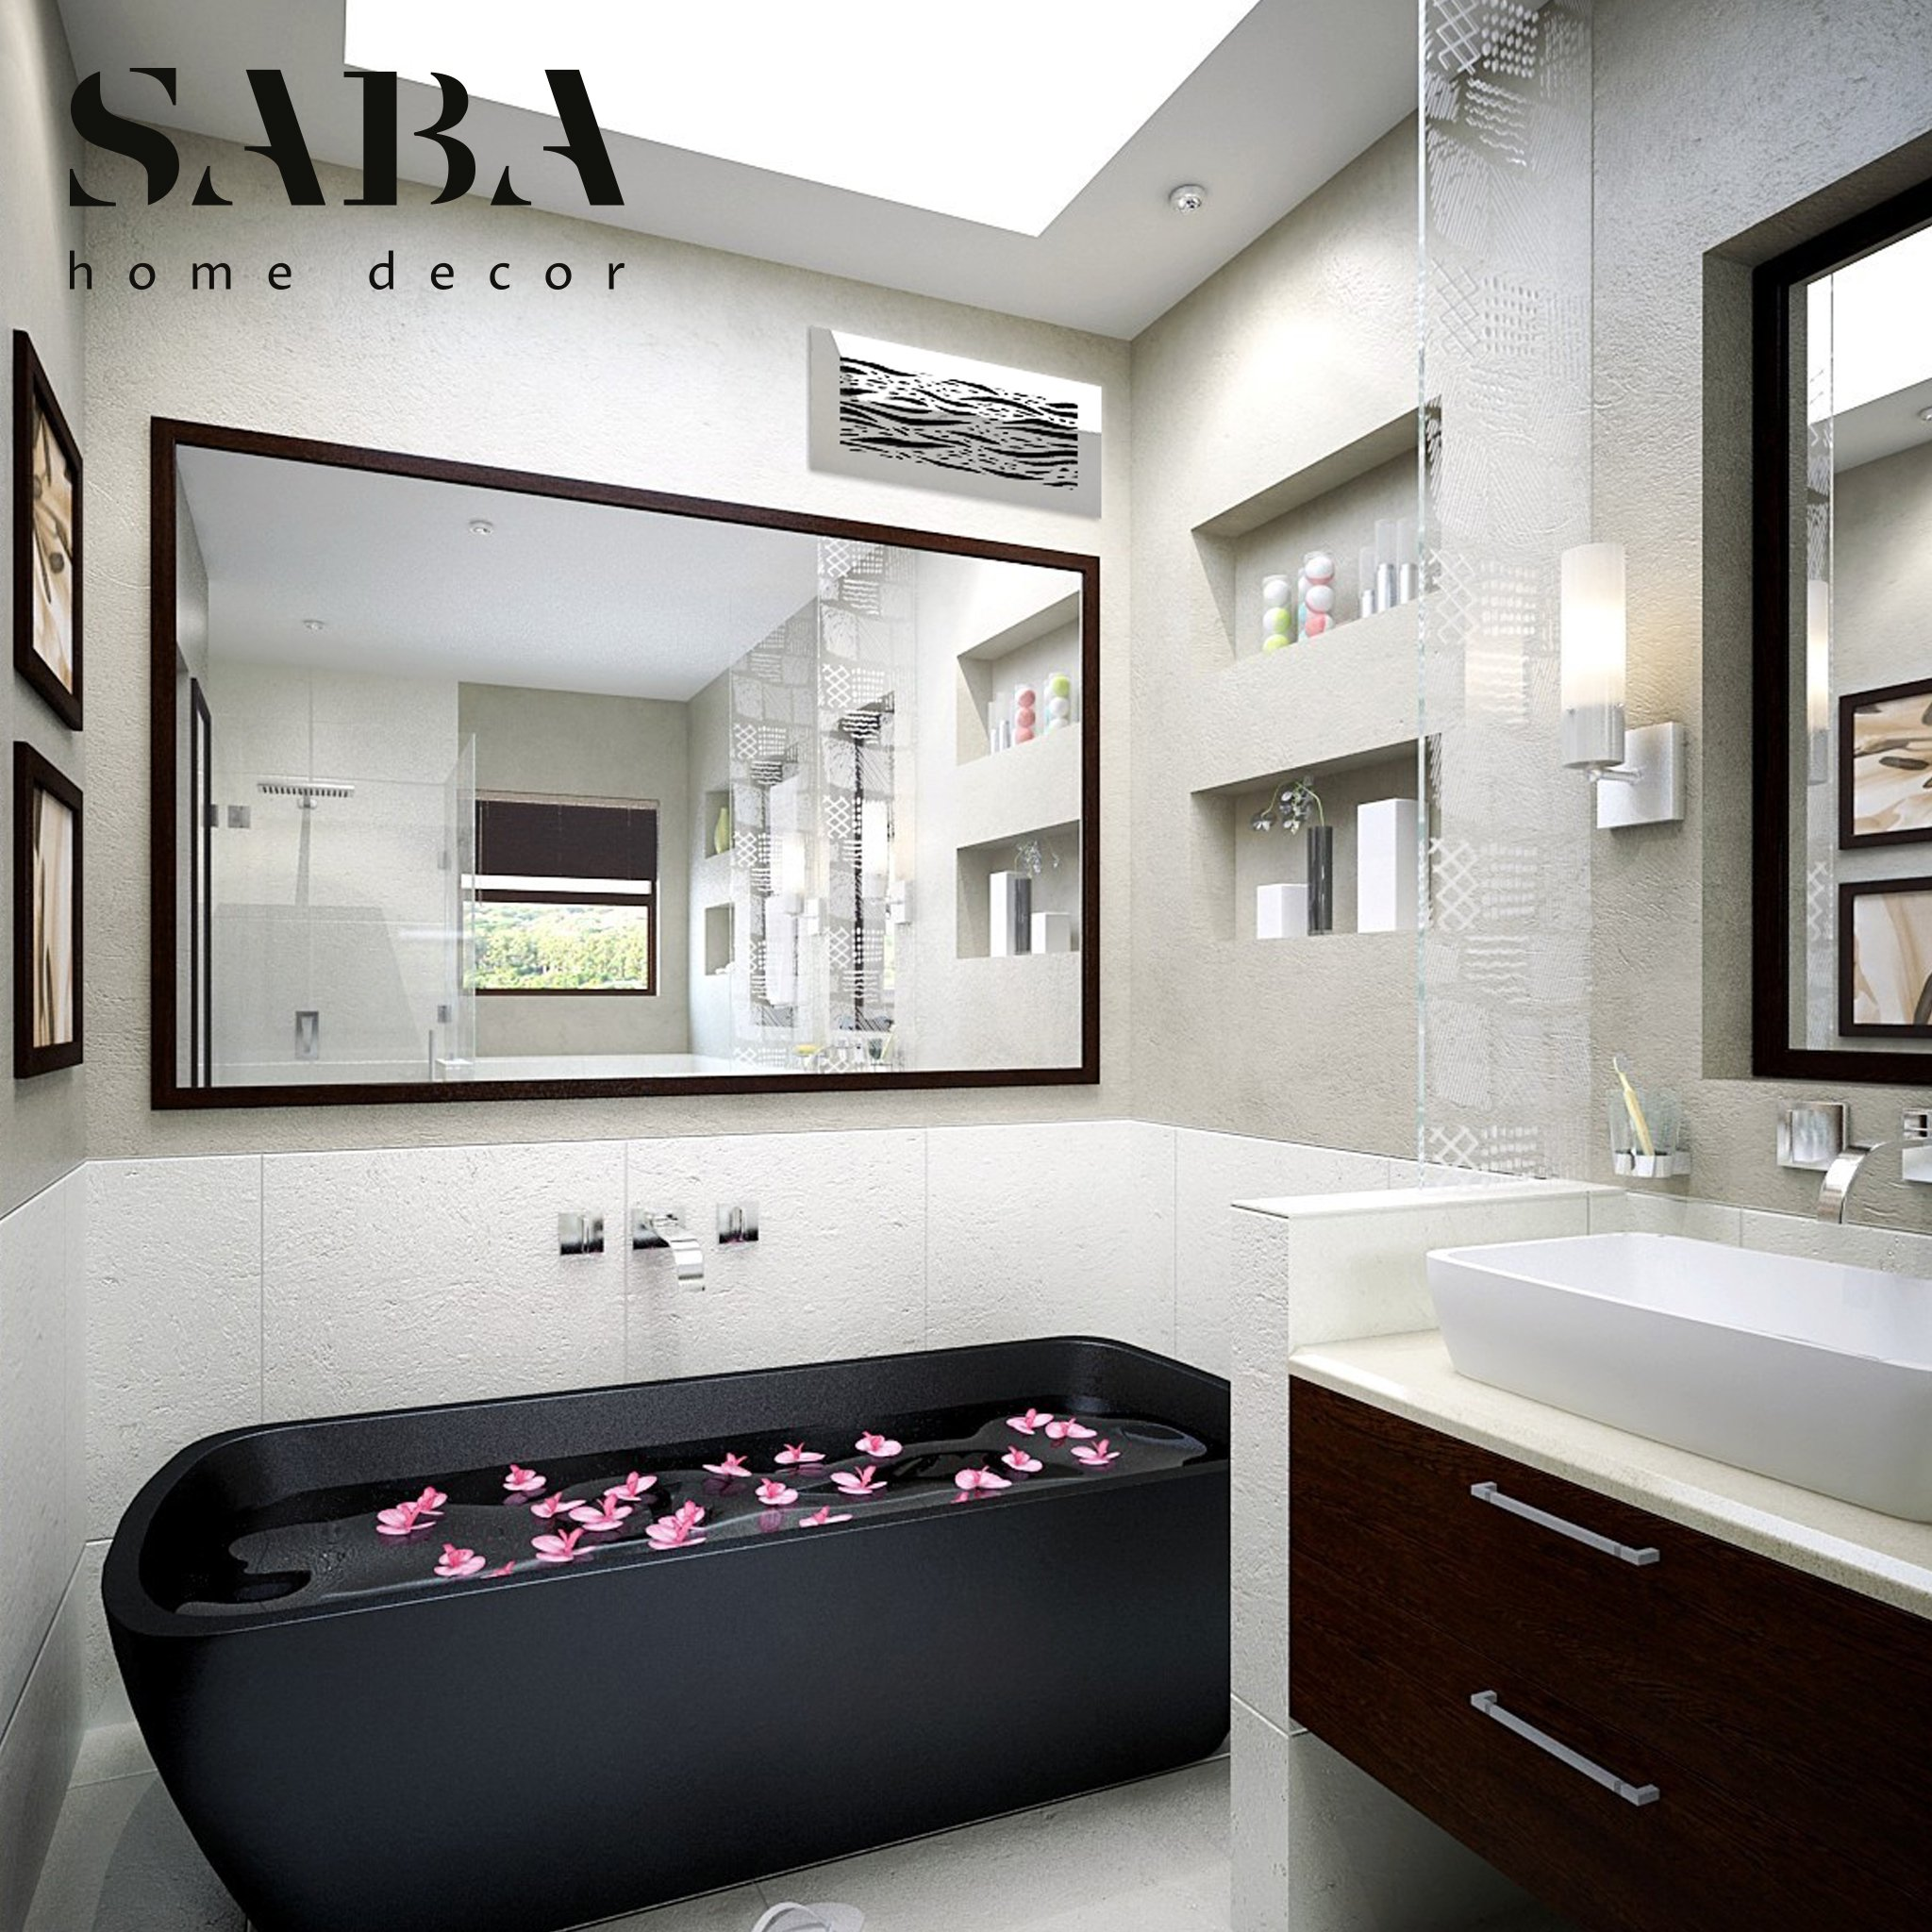 Saba Air Vent Covers Register - Acrylic Fiberglass Grille 10'' x 6'' Duct Opening (12'' x 8'' Overall) Mirror Finish Decorative Cover for Walls and Ceilings (not for Floor use), Waves by SABA Home Decor (Image #6)